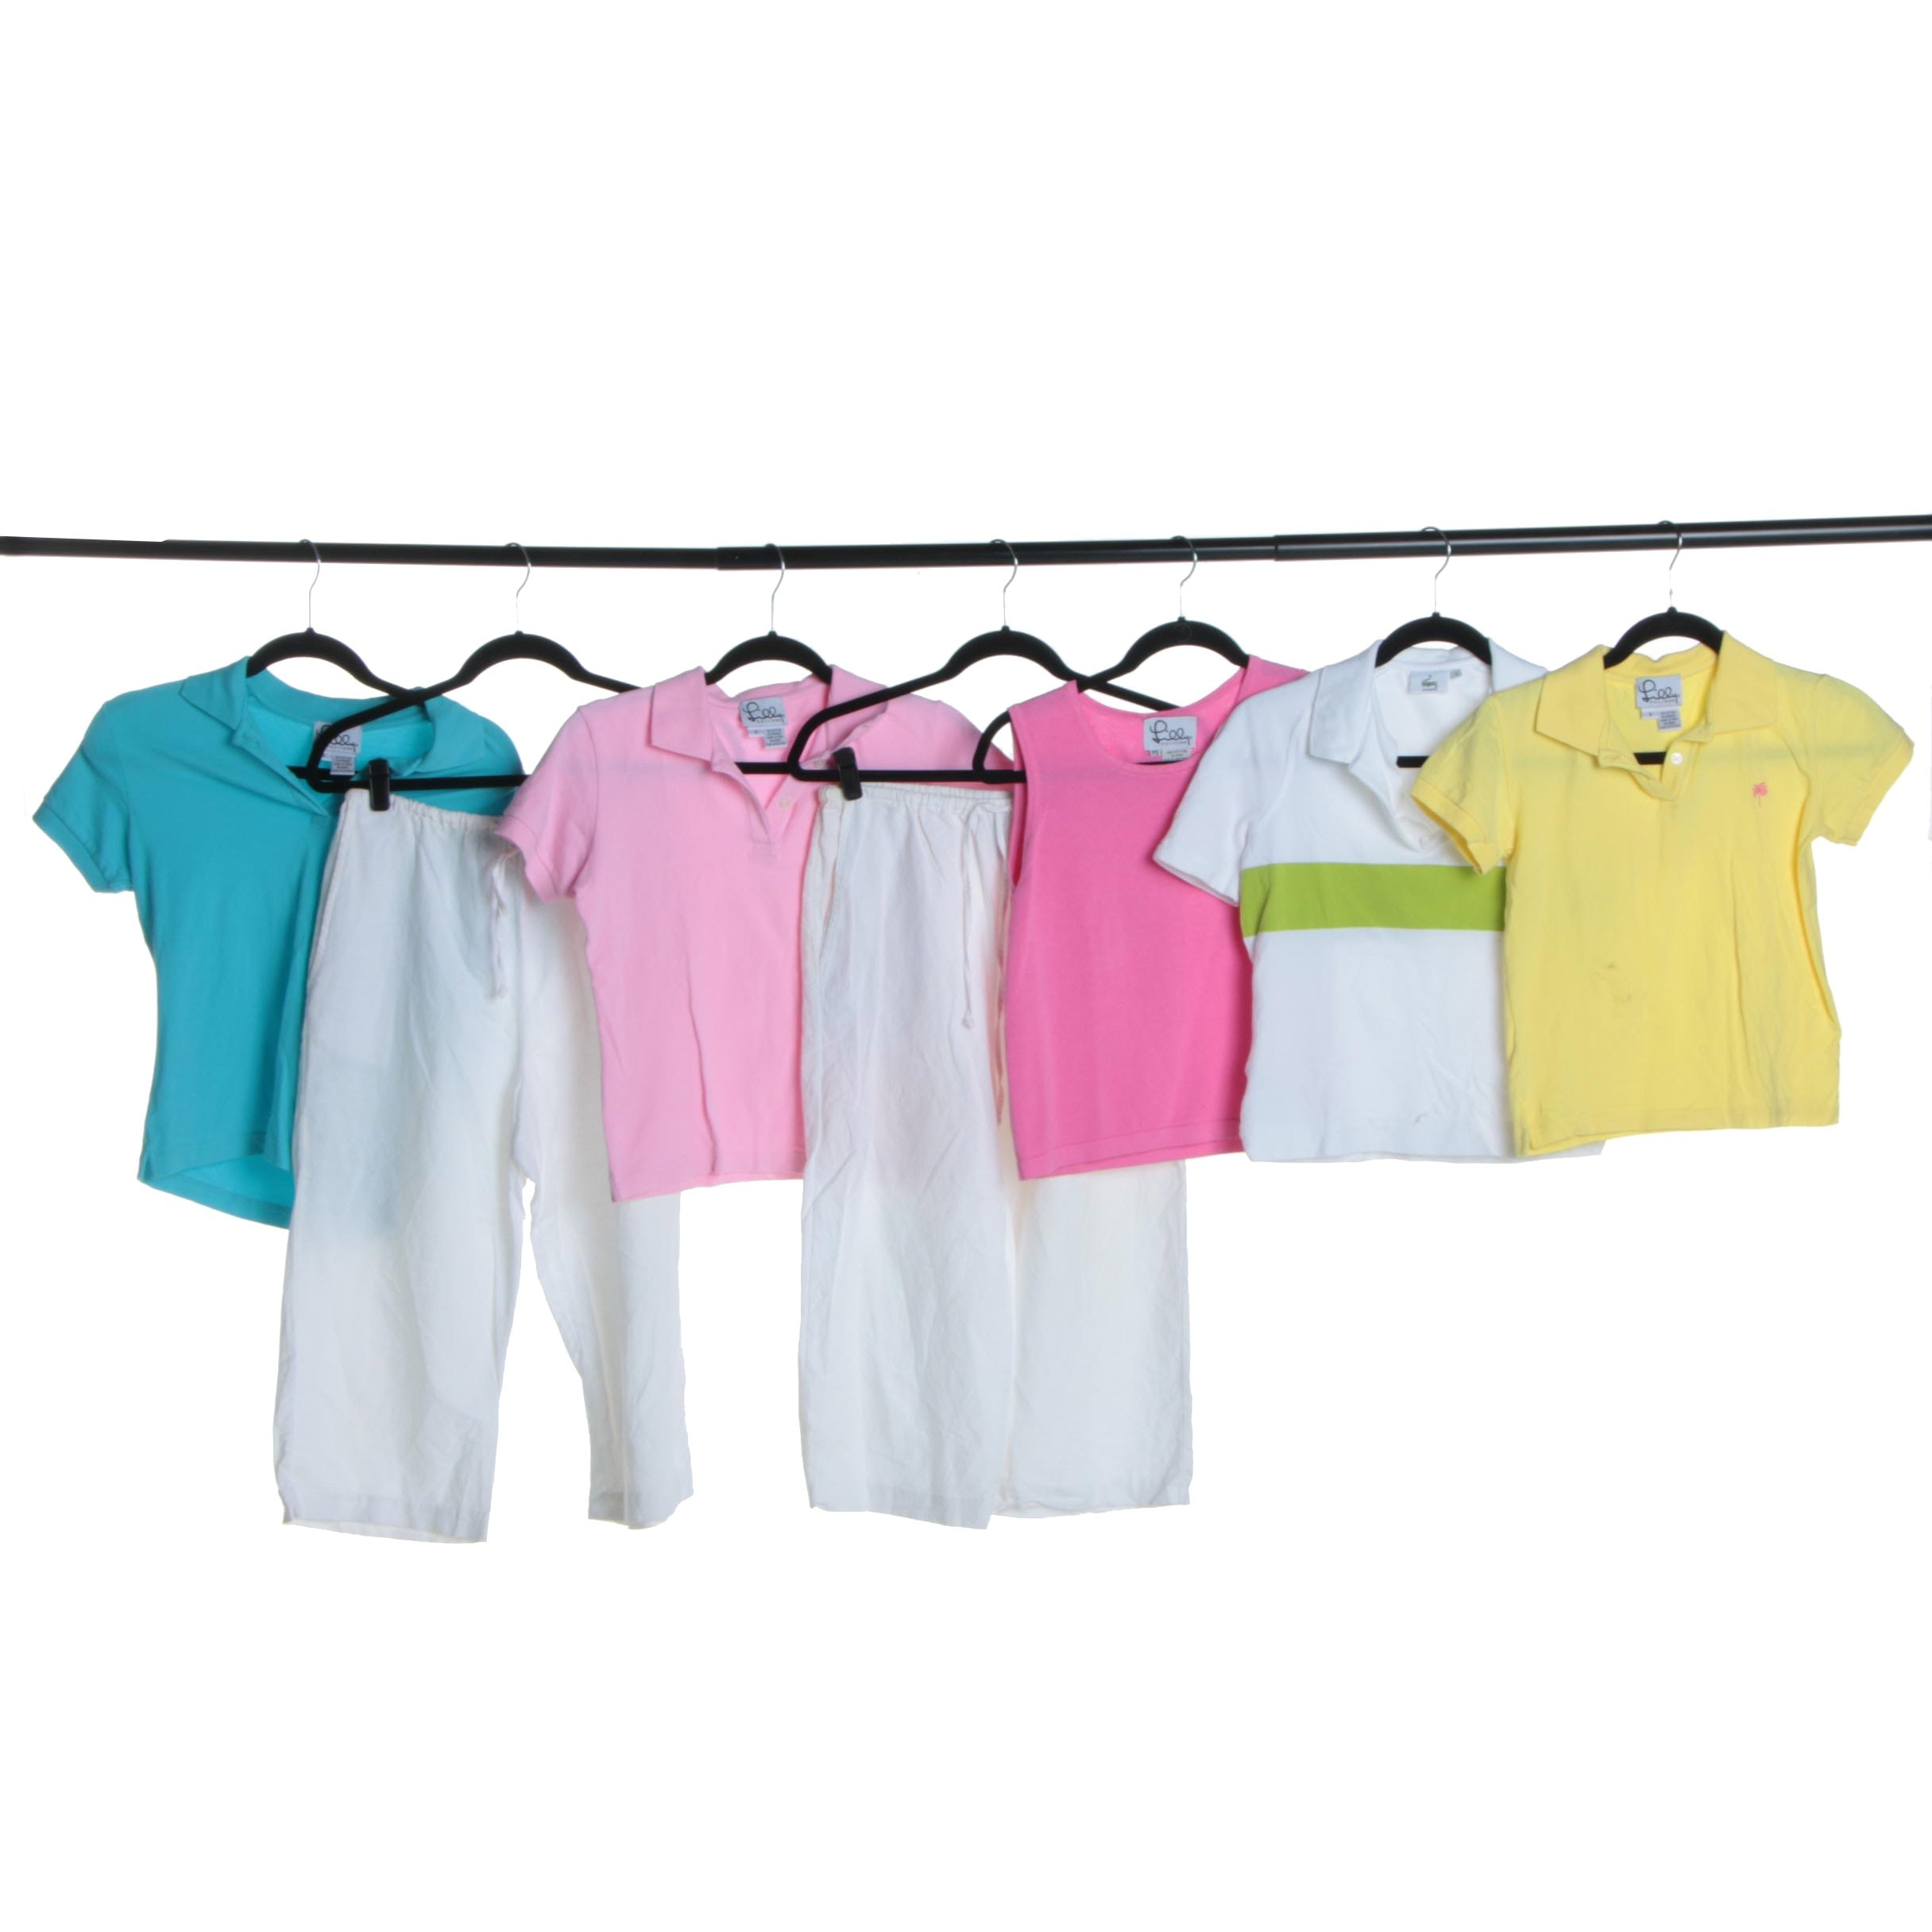 Women's Polo Shirts and Pants Including Lilly Pulitzer and Lacoste